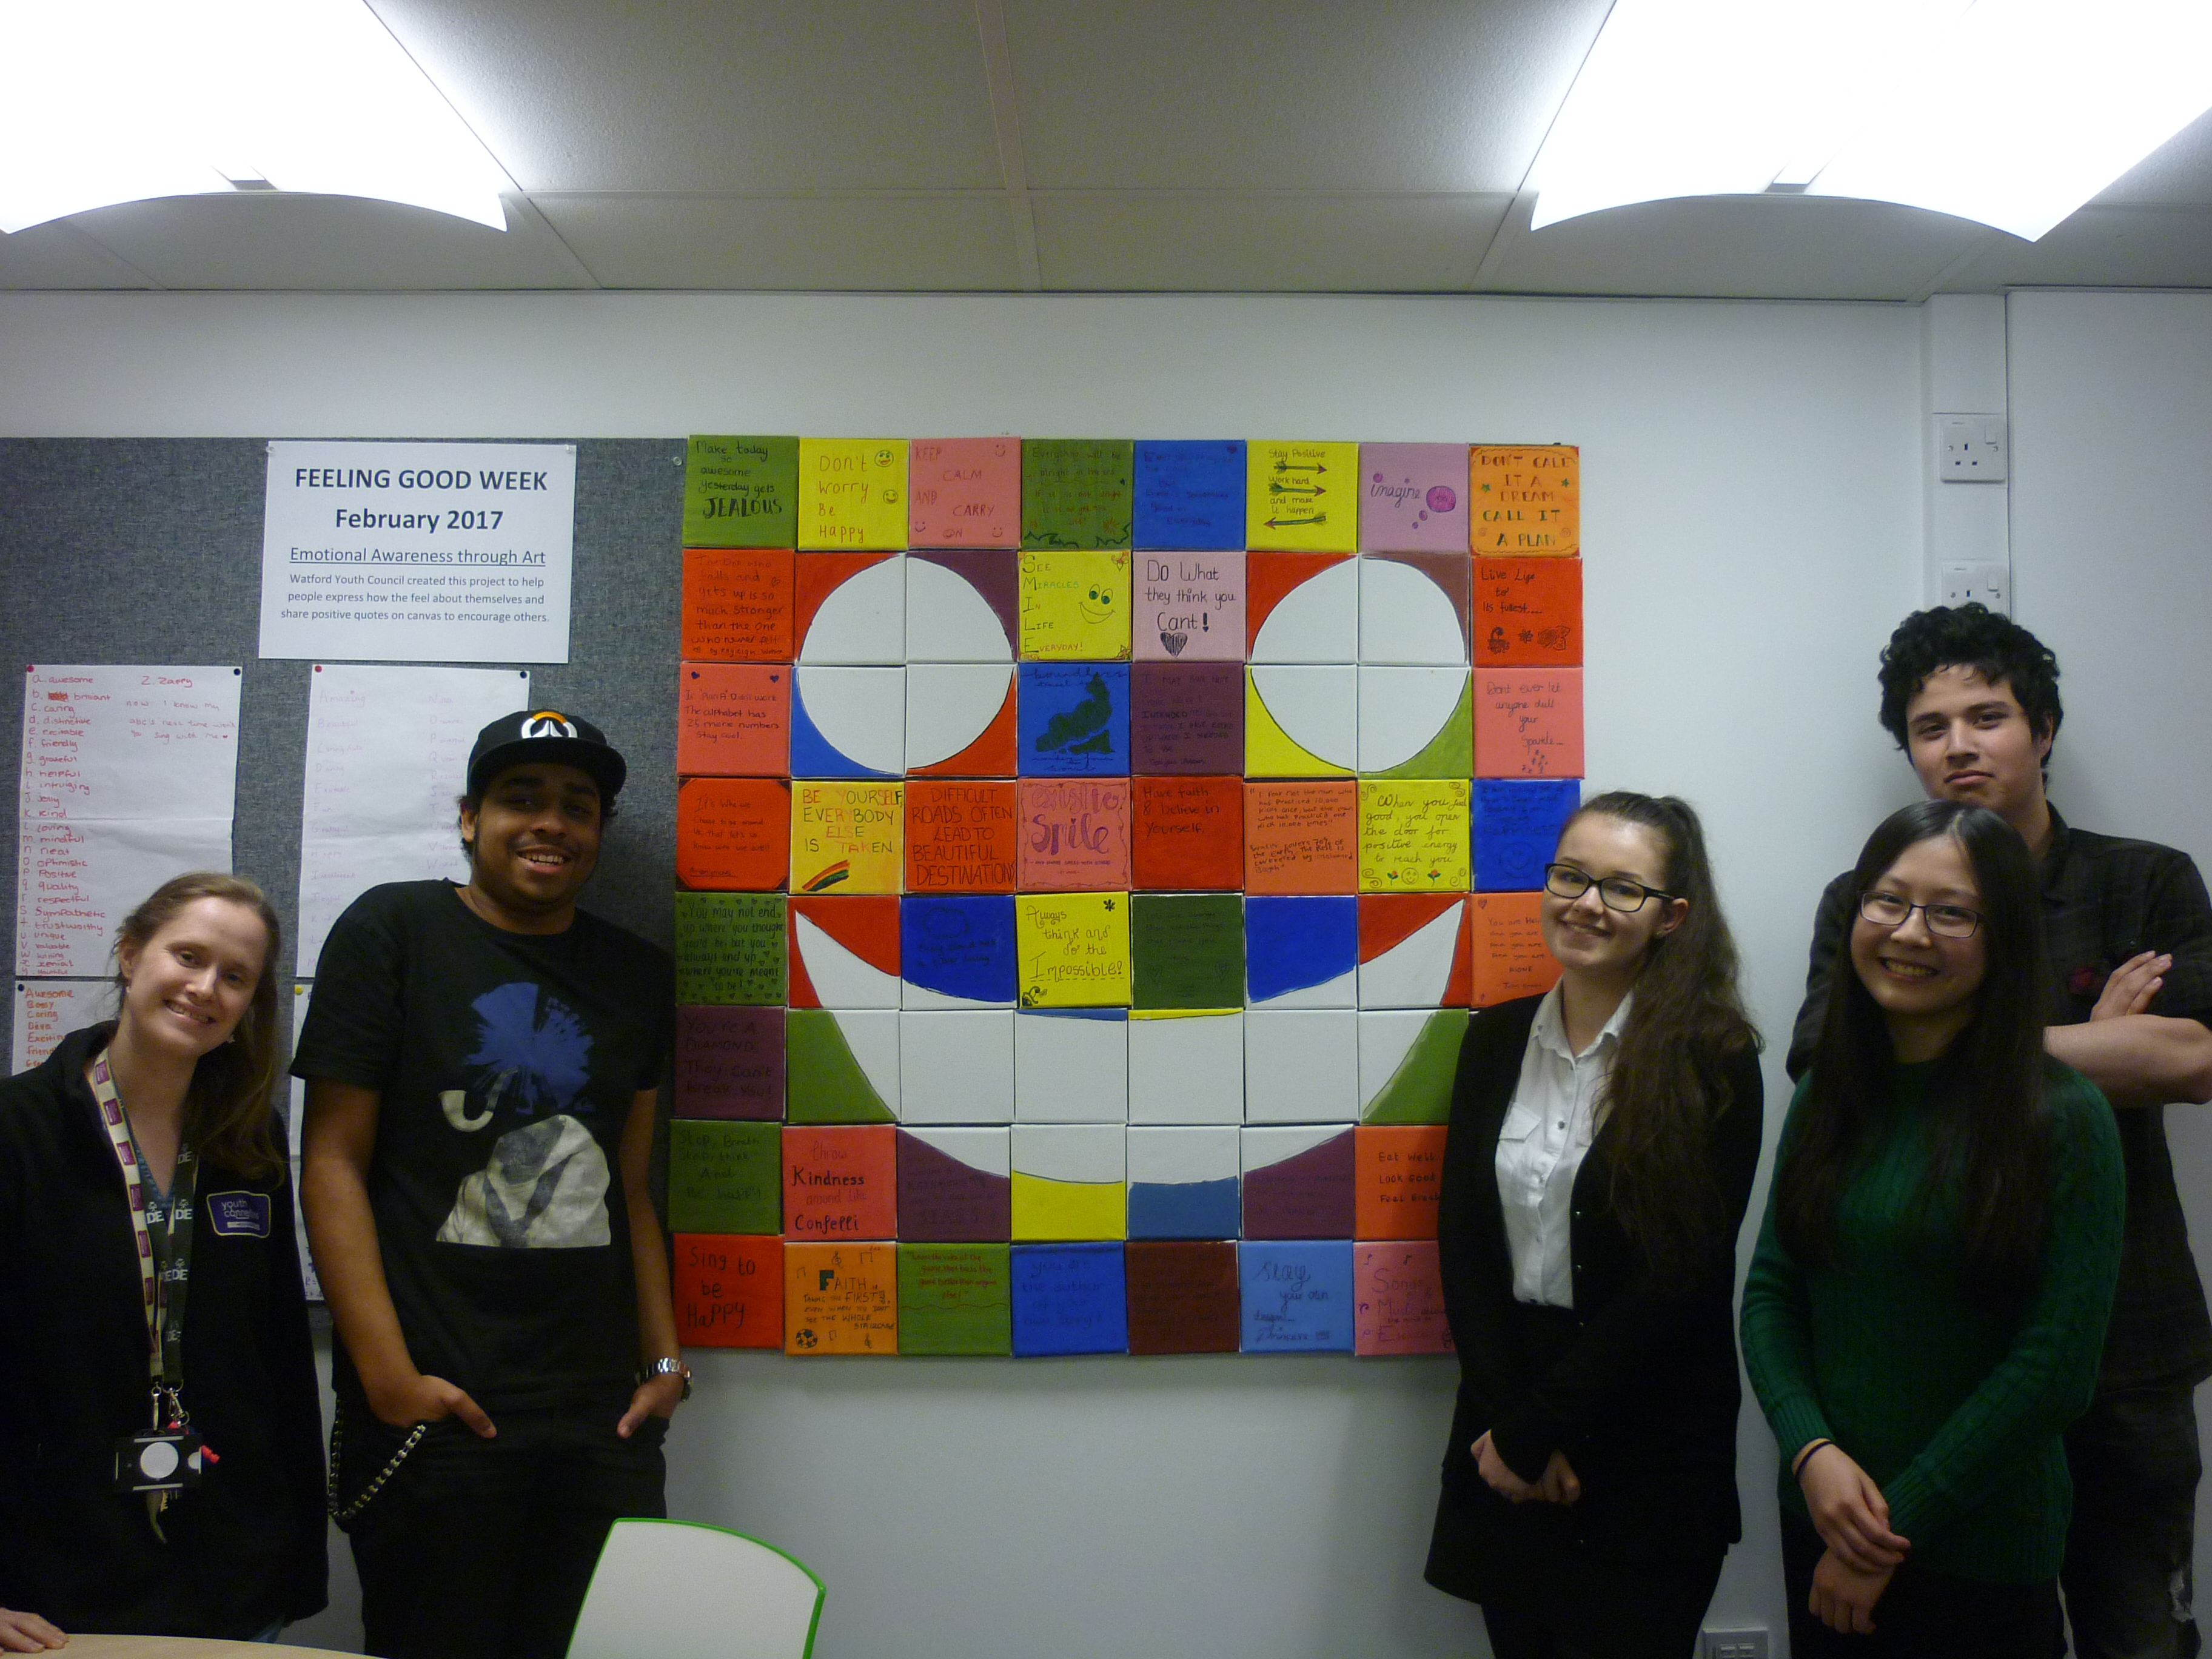 Watford Youth Council spreads Wellbeing with a Smile!